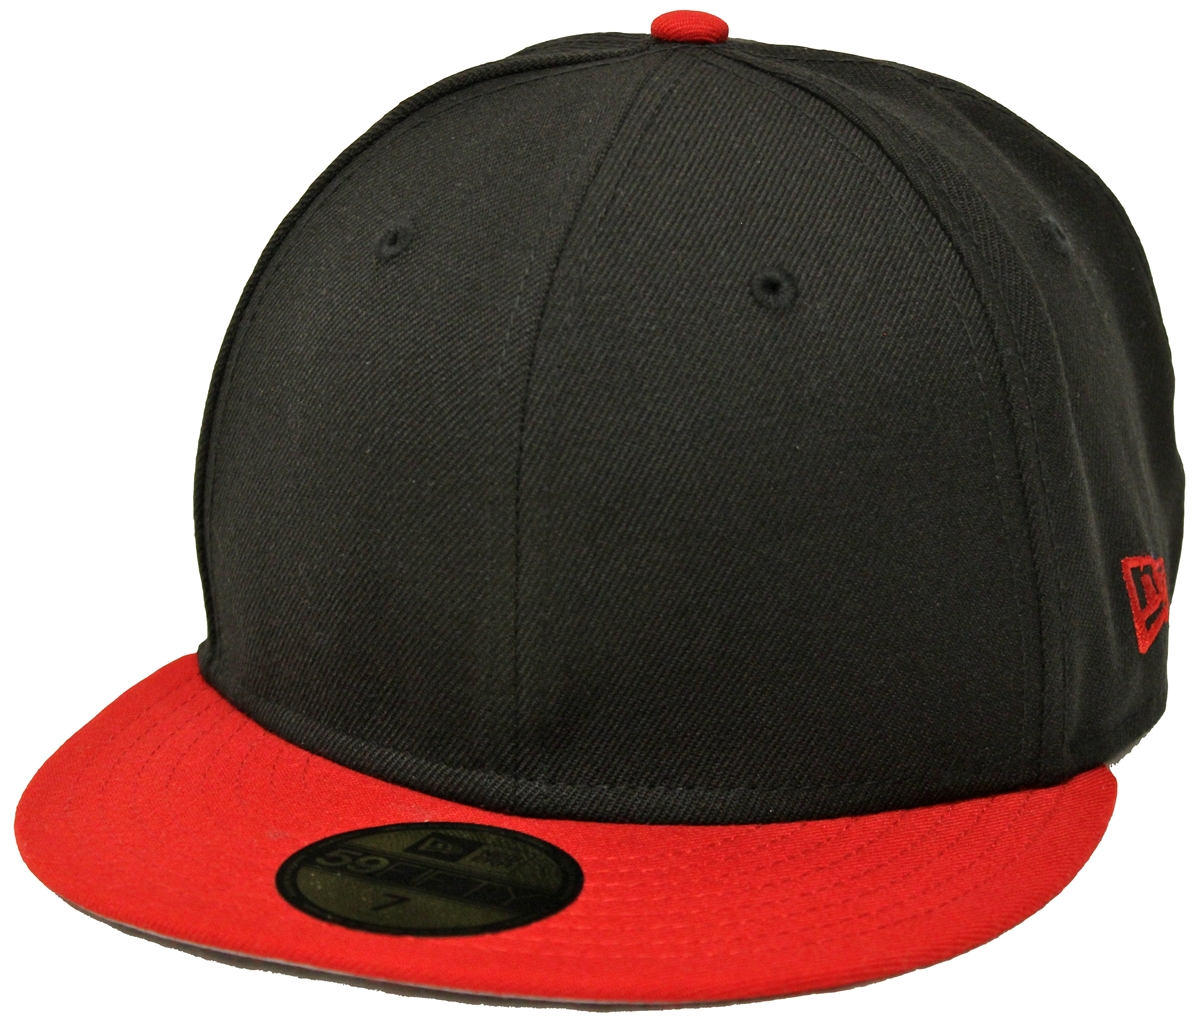 39fff1a8 New Era 59Fifty Plain Black Red Fitted Cap Blank 2 Tone Gray Underbrim Hat  Bred